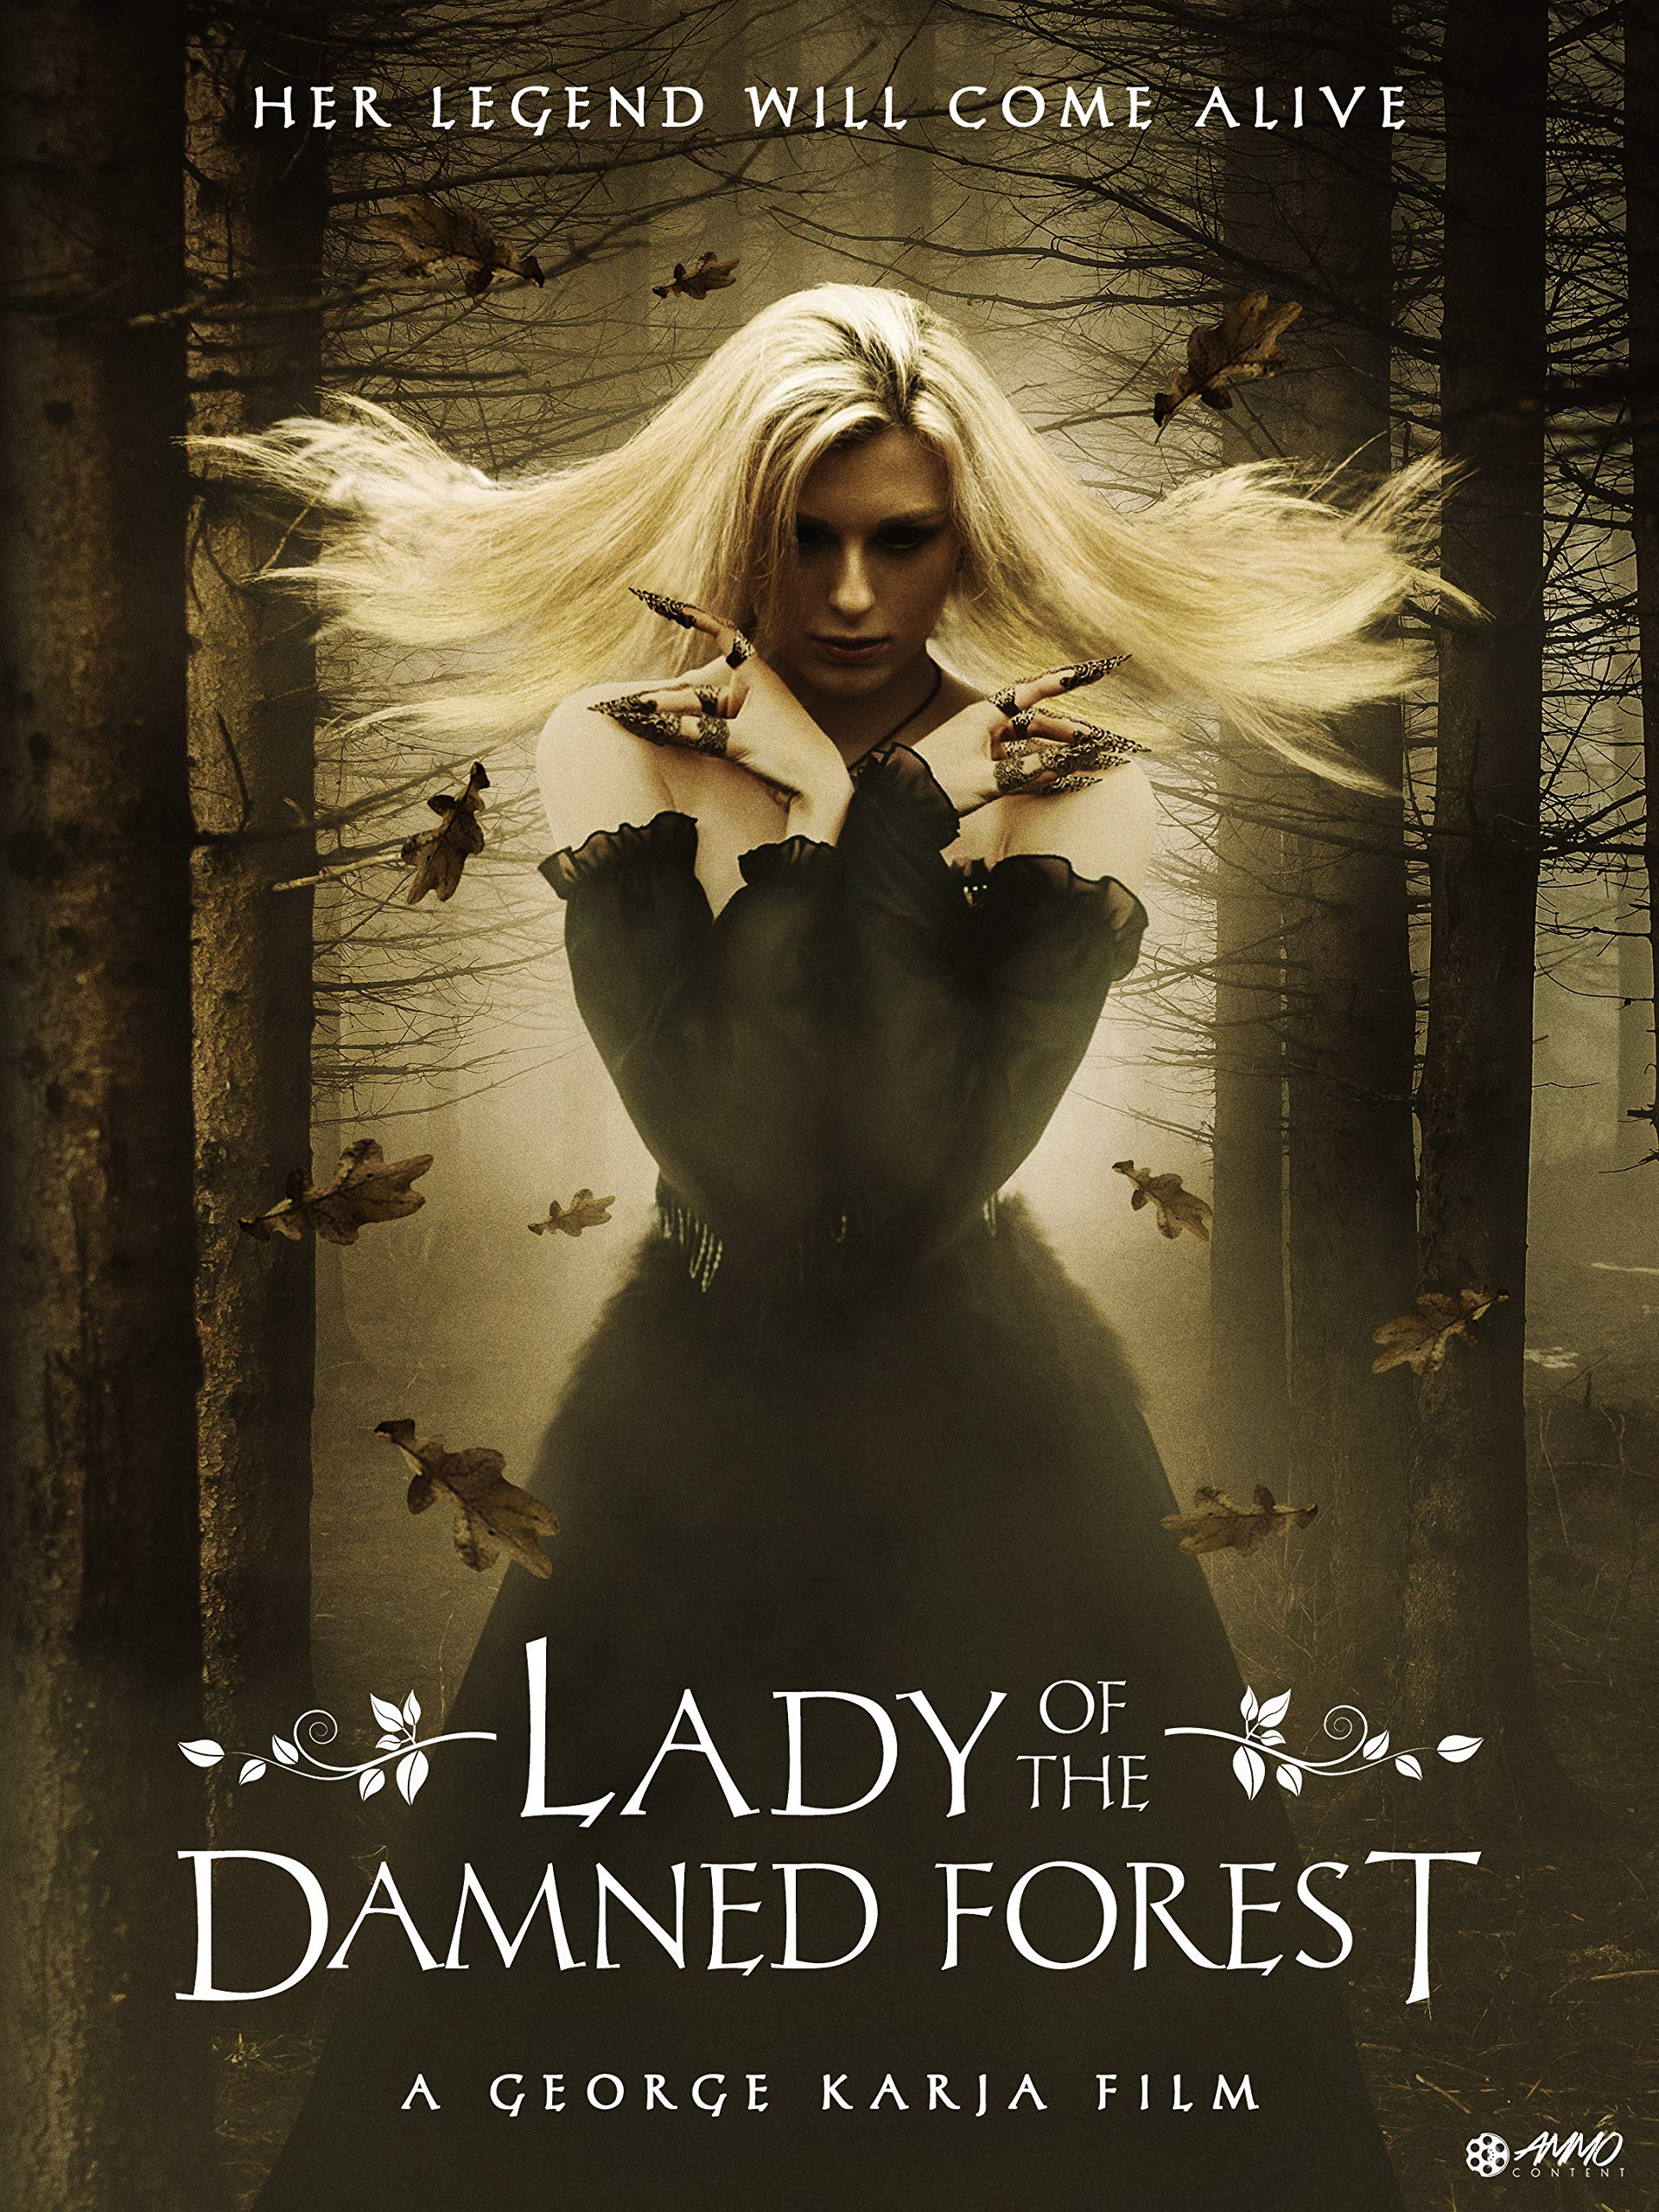 Lady of The Damned Forest 2017 Hindi Dual Audio 480p HDRip ESubs 350MB x264 AAC